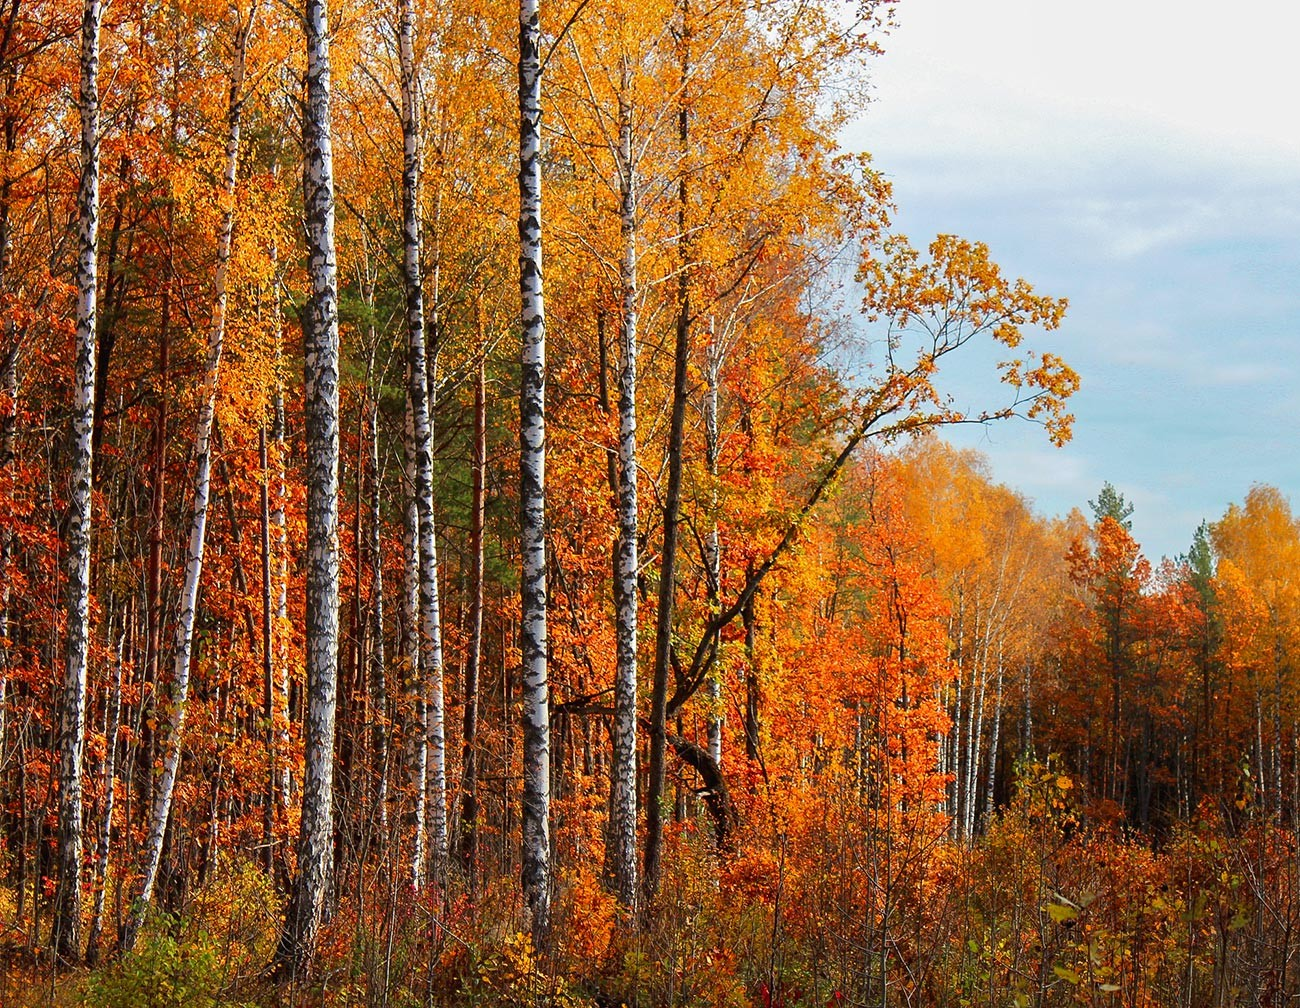 Fall in a Russian forest